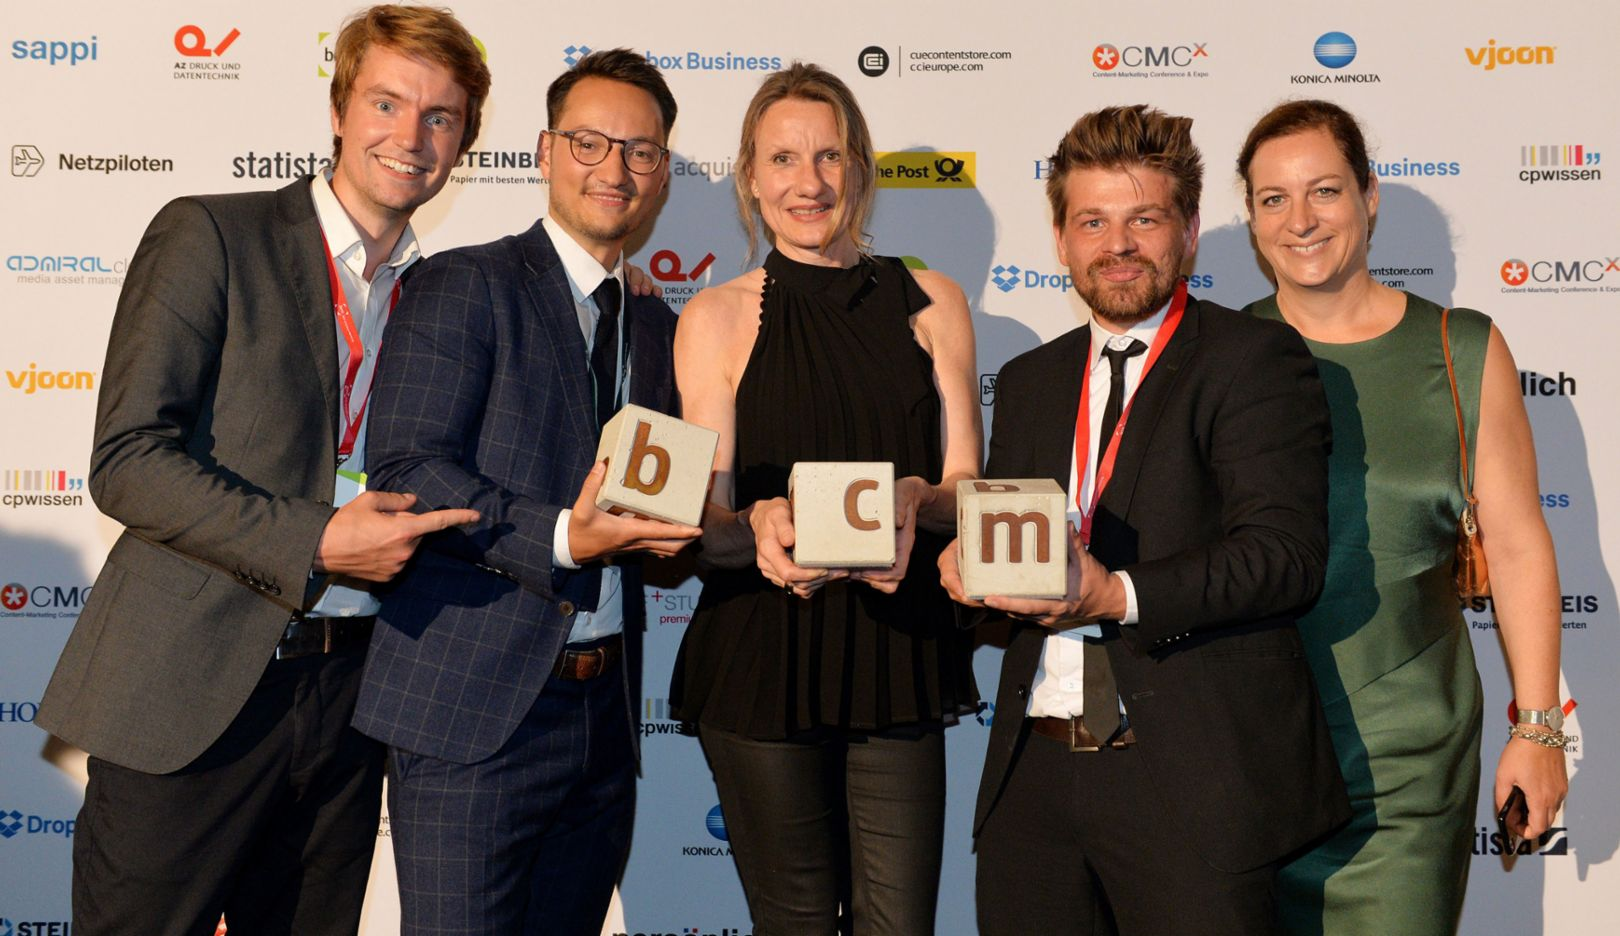 Pascal Schulze-Bisping, Project Management Porsche Newsroom Porsche AG, Julian Hoffmann, Editorial Management Porsche Newsroom Porsche AG, Sabine Schröder, Director Corporate Publishing Porsche AG, Till Uhrig, Editor TERRITORY Content to Results GmbH, Sandra Harzer-Kux, CEO TERRITORY Content to Results GmbH, l-r, BCM Award, awards show, Berlin, 2017, Porsche AG